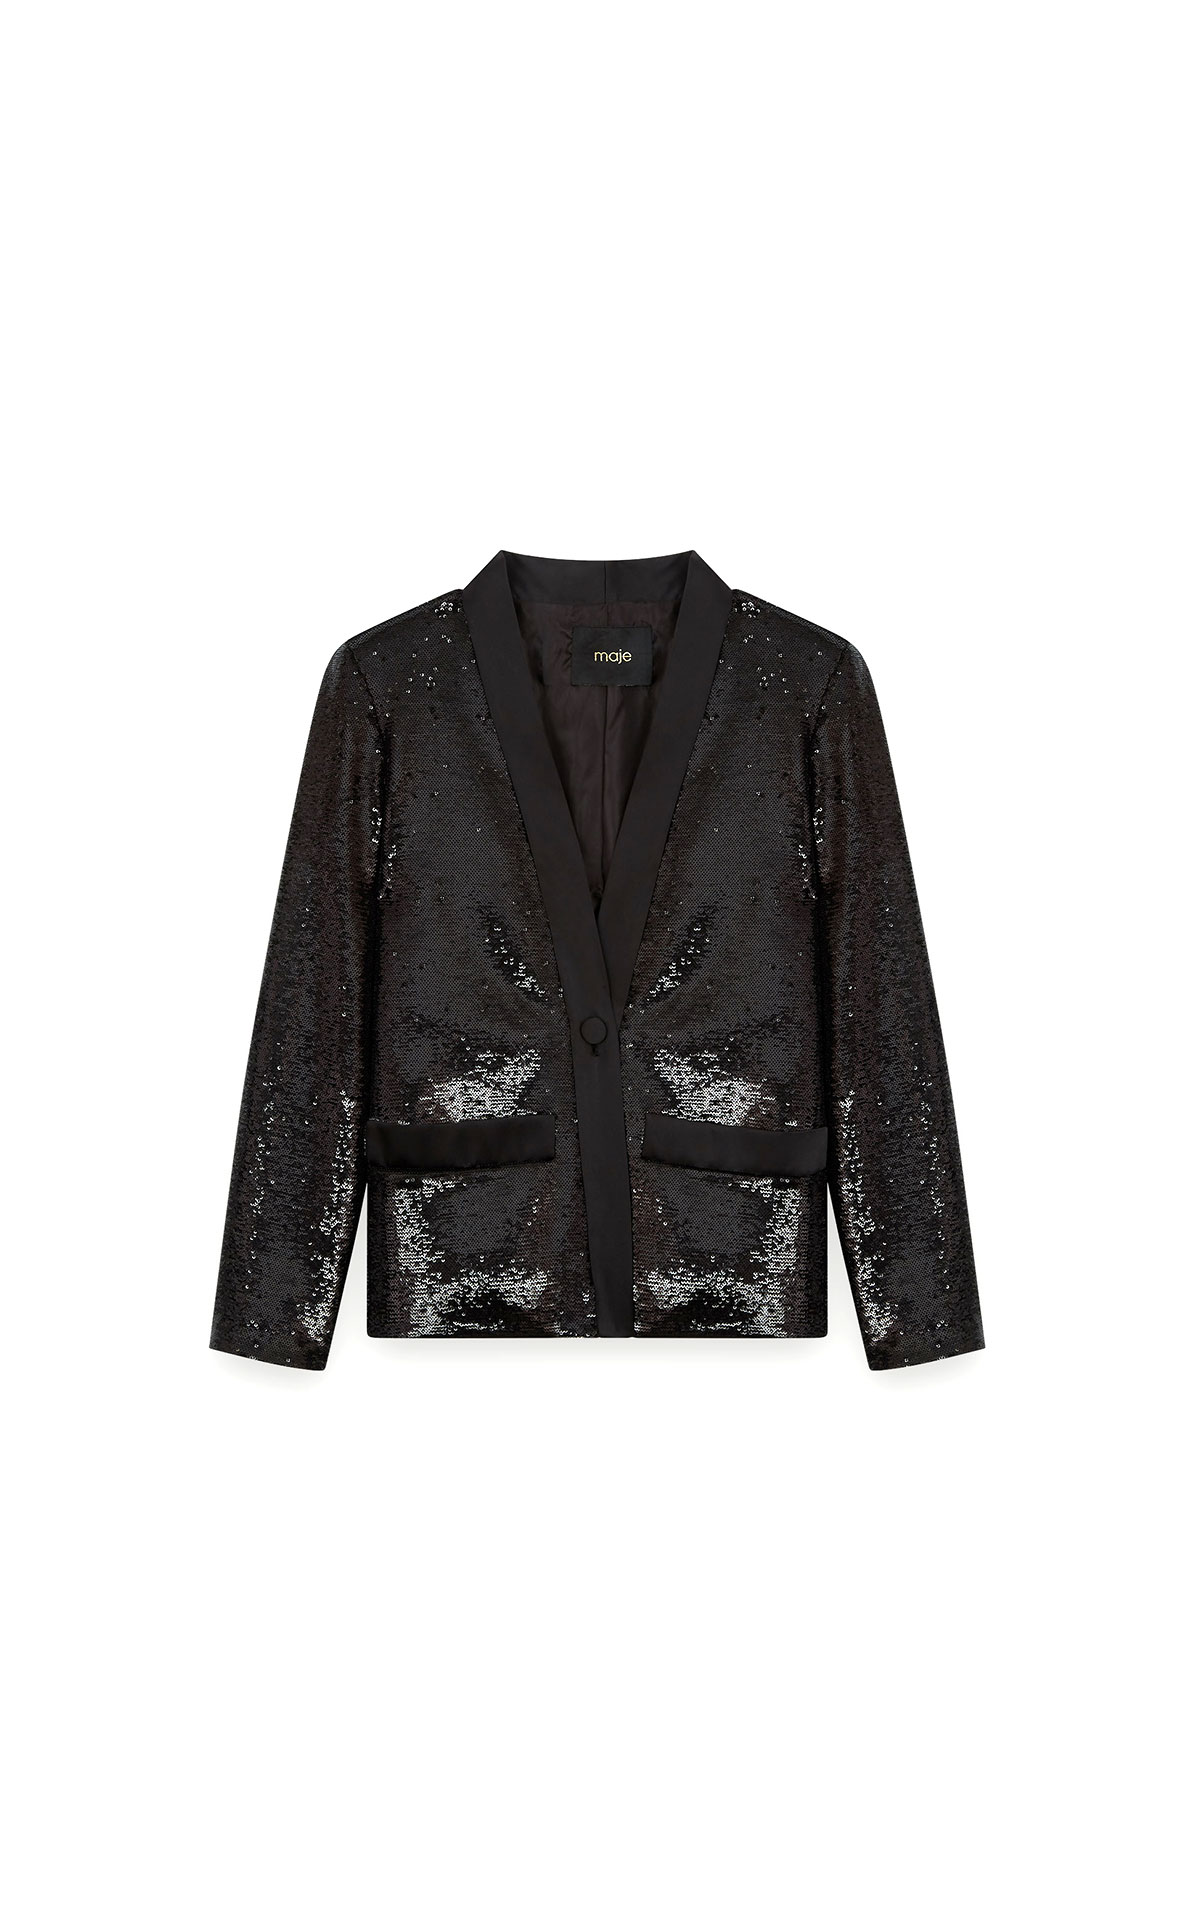 Maje Sequin satin jacket in black at The Bicester Village Shopping Collection